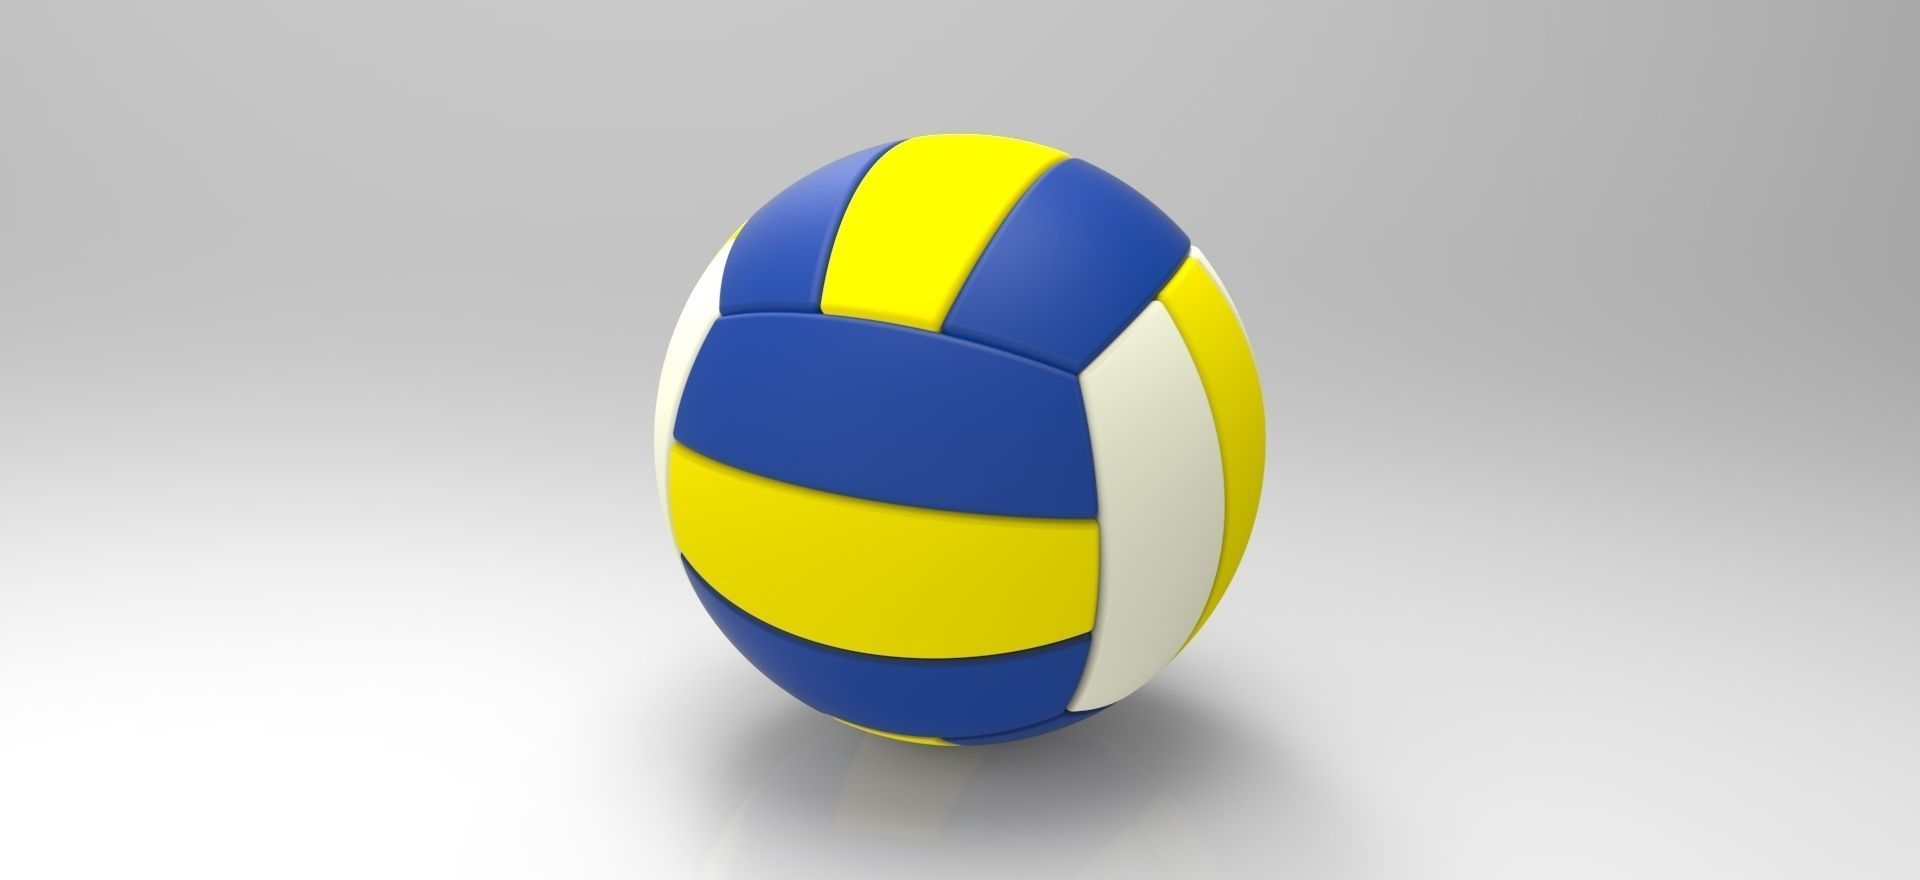 1920x880 Volleyball Ball Free 3d Model